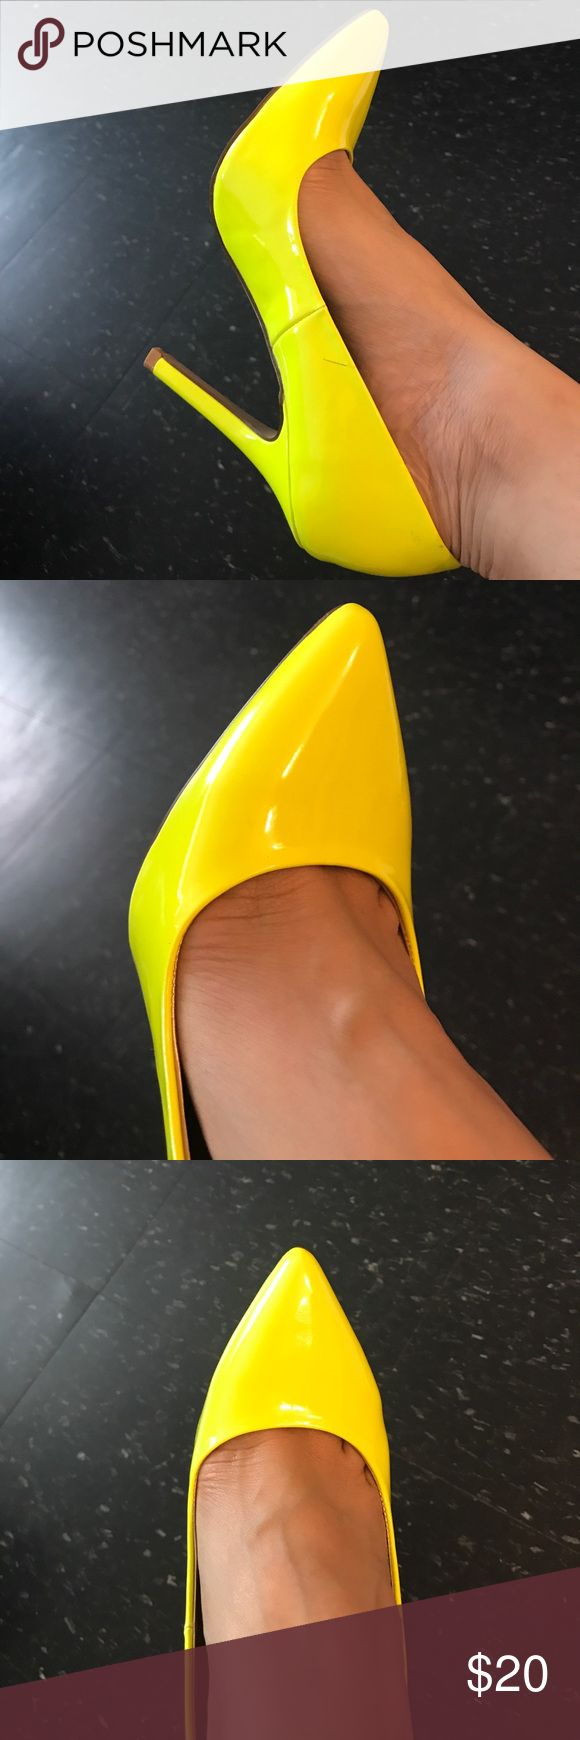 Neon Yellow Pumps / Shoes Neon Yellow Pumps / Shoes Size 8 1/2 Shoes Heels